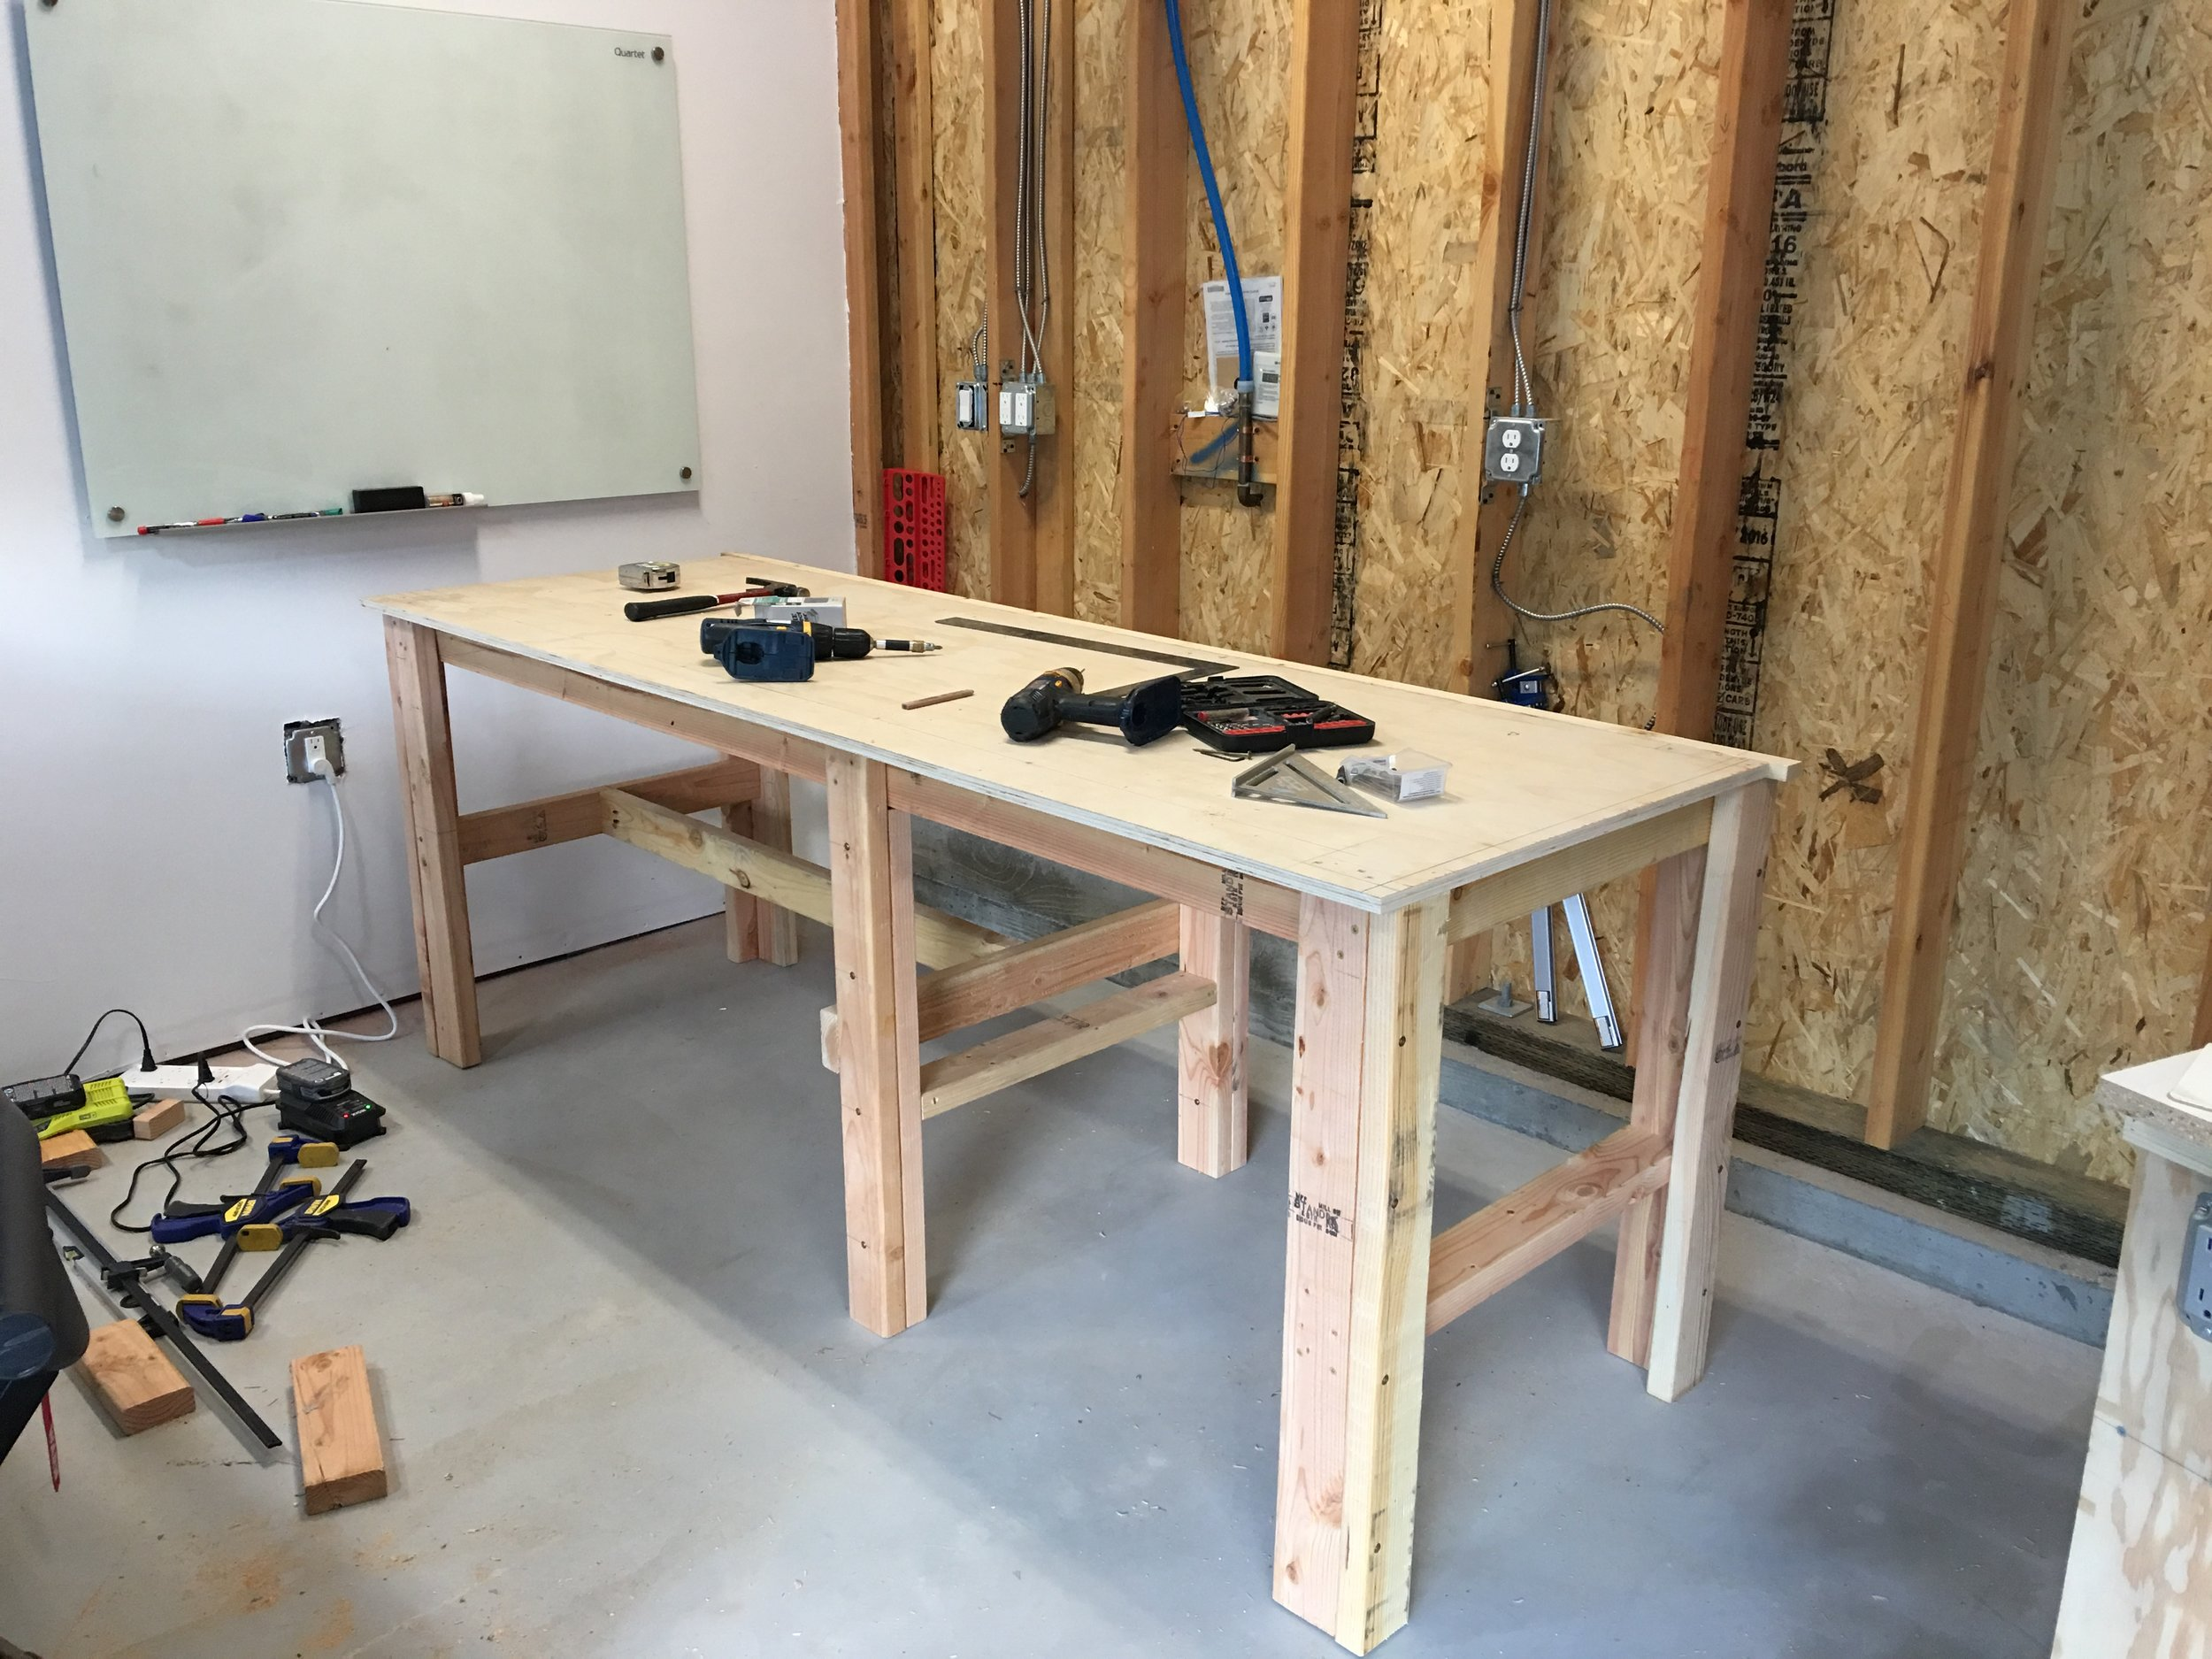 """Added a sheet of 3/4"""" plywood, squaring it up as I screw it down onto the legs and apron."""